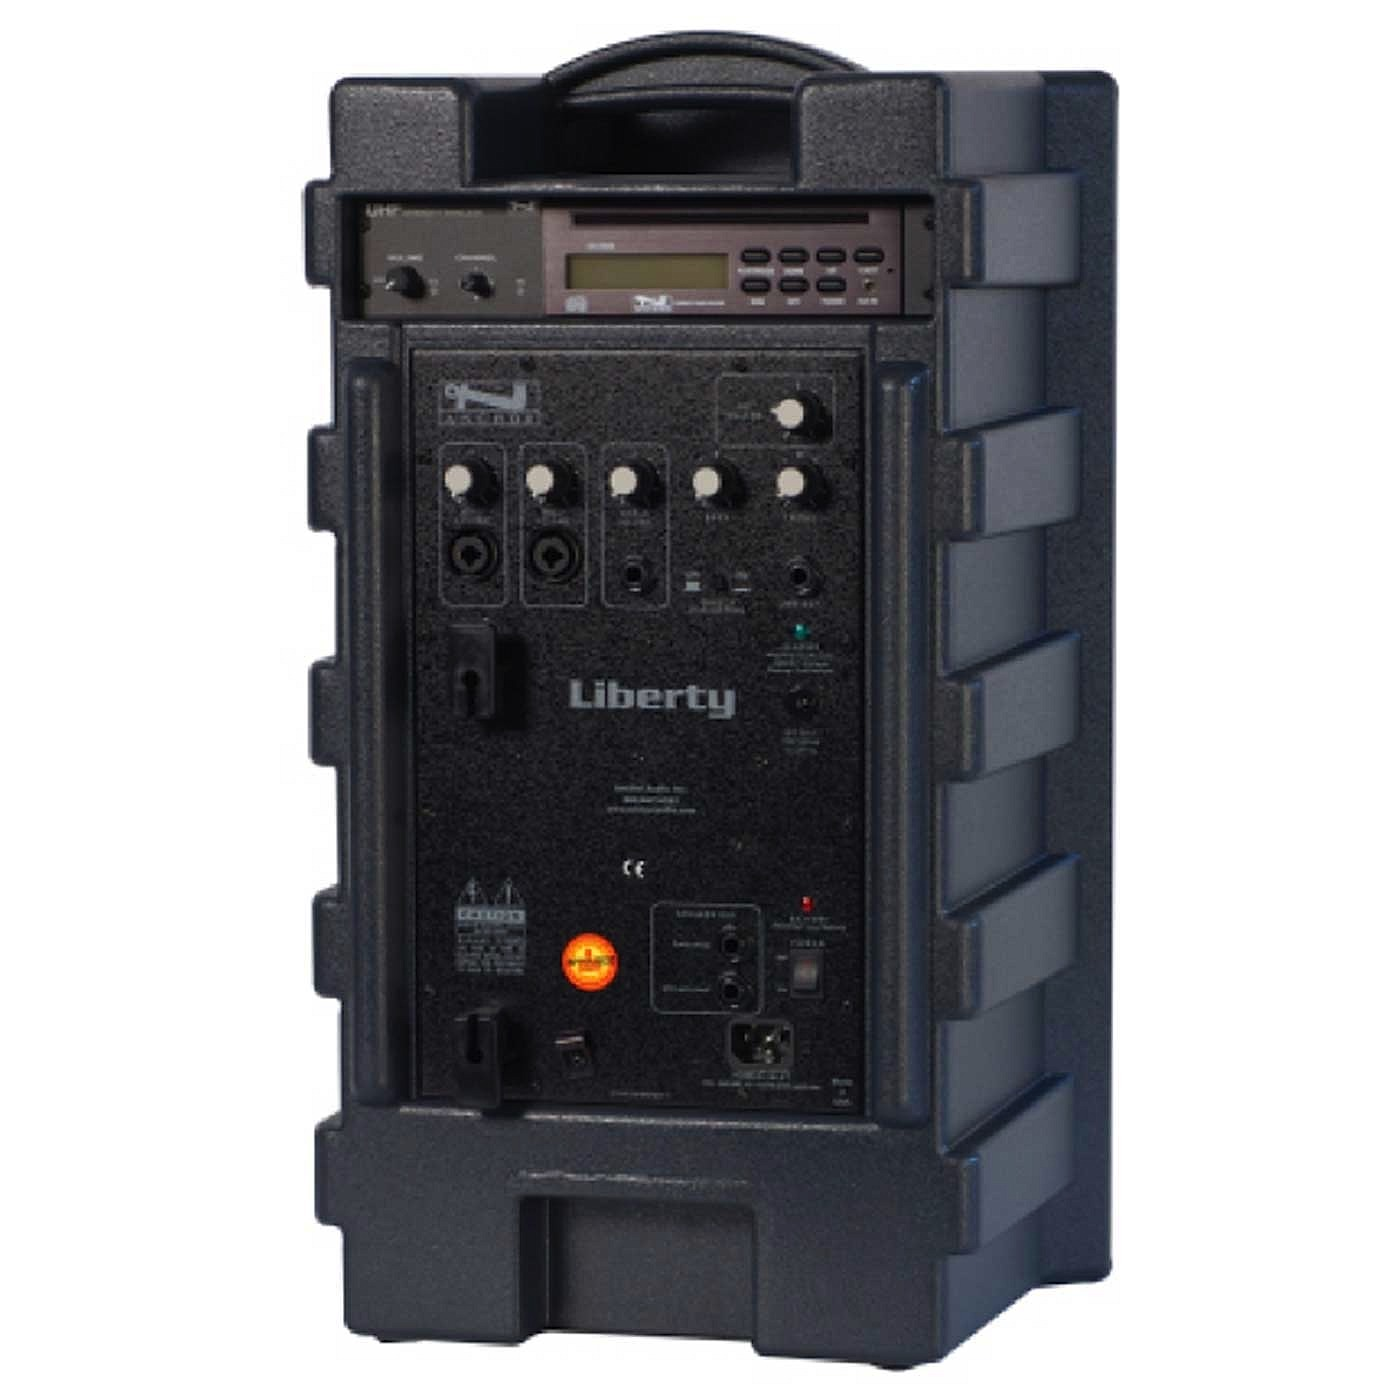 Anchor Liberty 6000 Portable Sound System